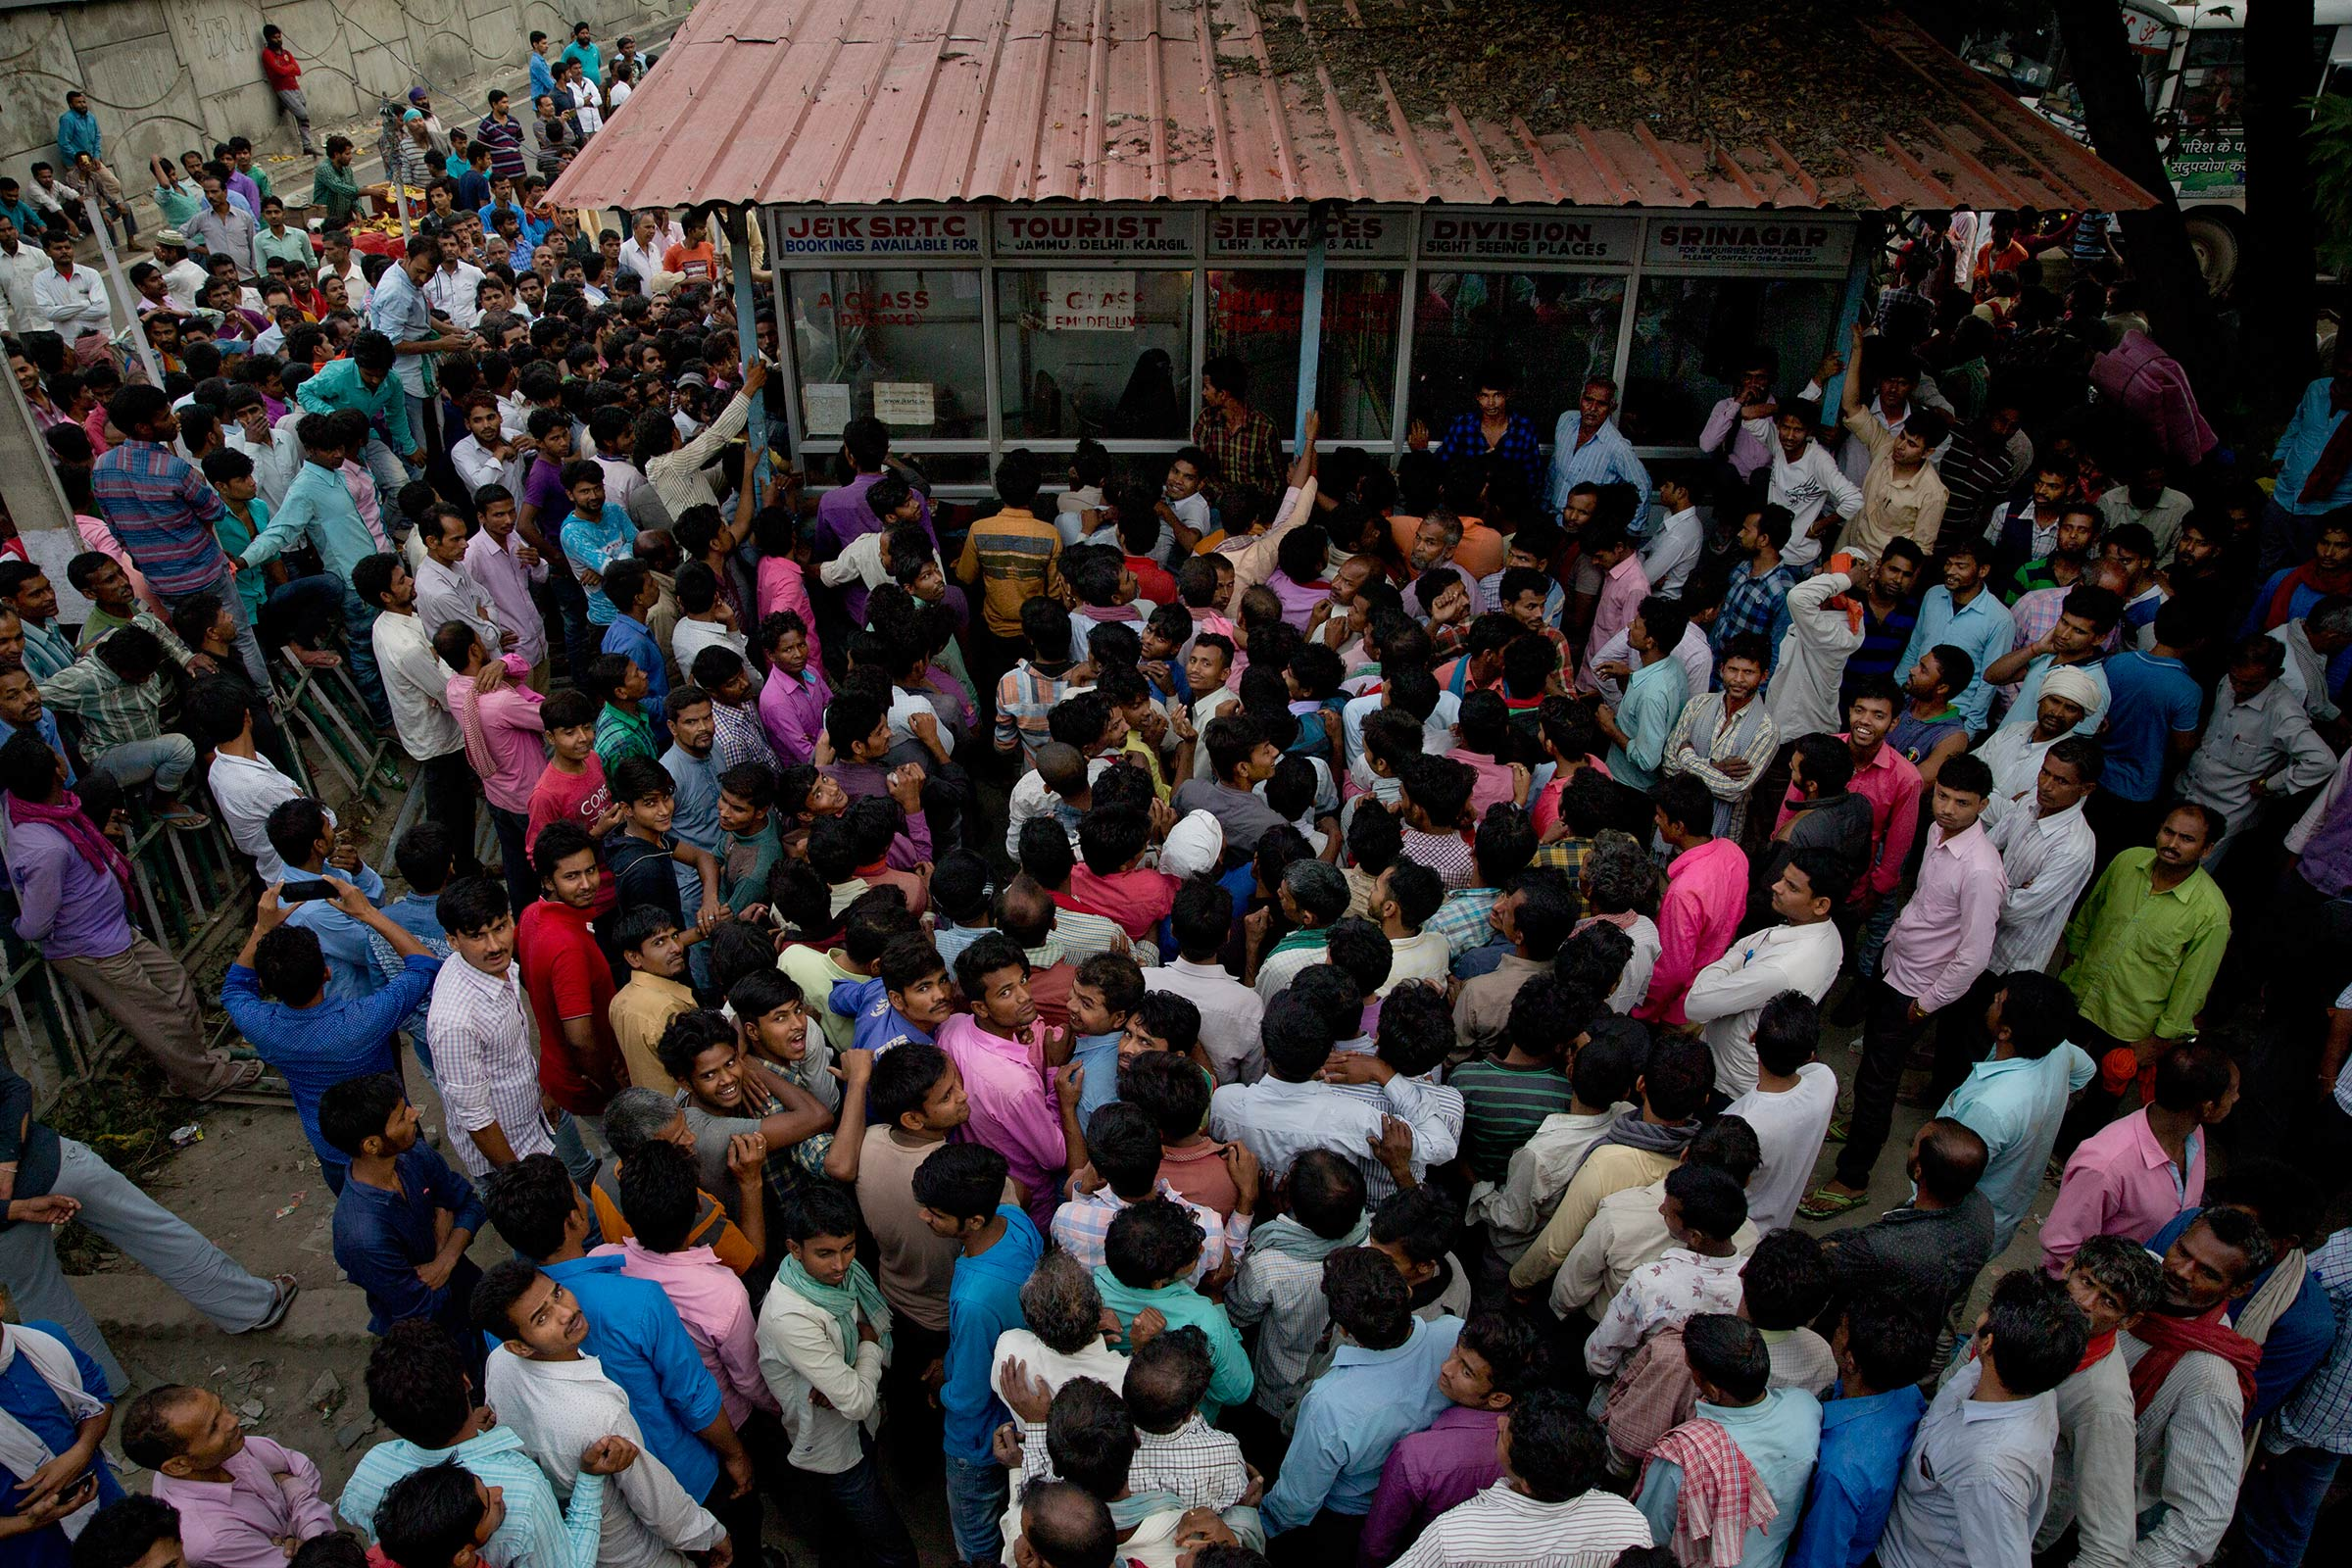 Indian migrant workers crowd outside the government transport yard to buy bus tickets to leave the region, during curfew in Srinagar, Indian controlled Kashmir, Wednesday, Aug. 7.